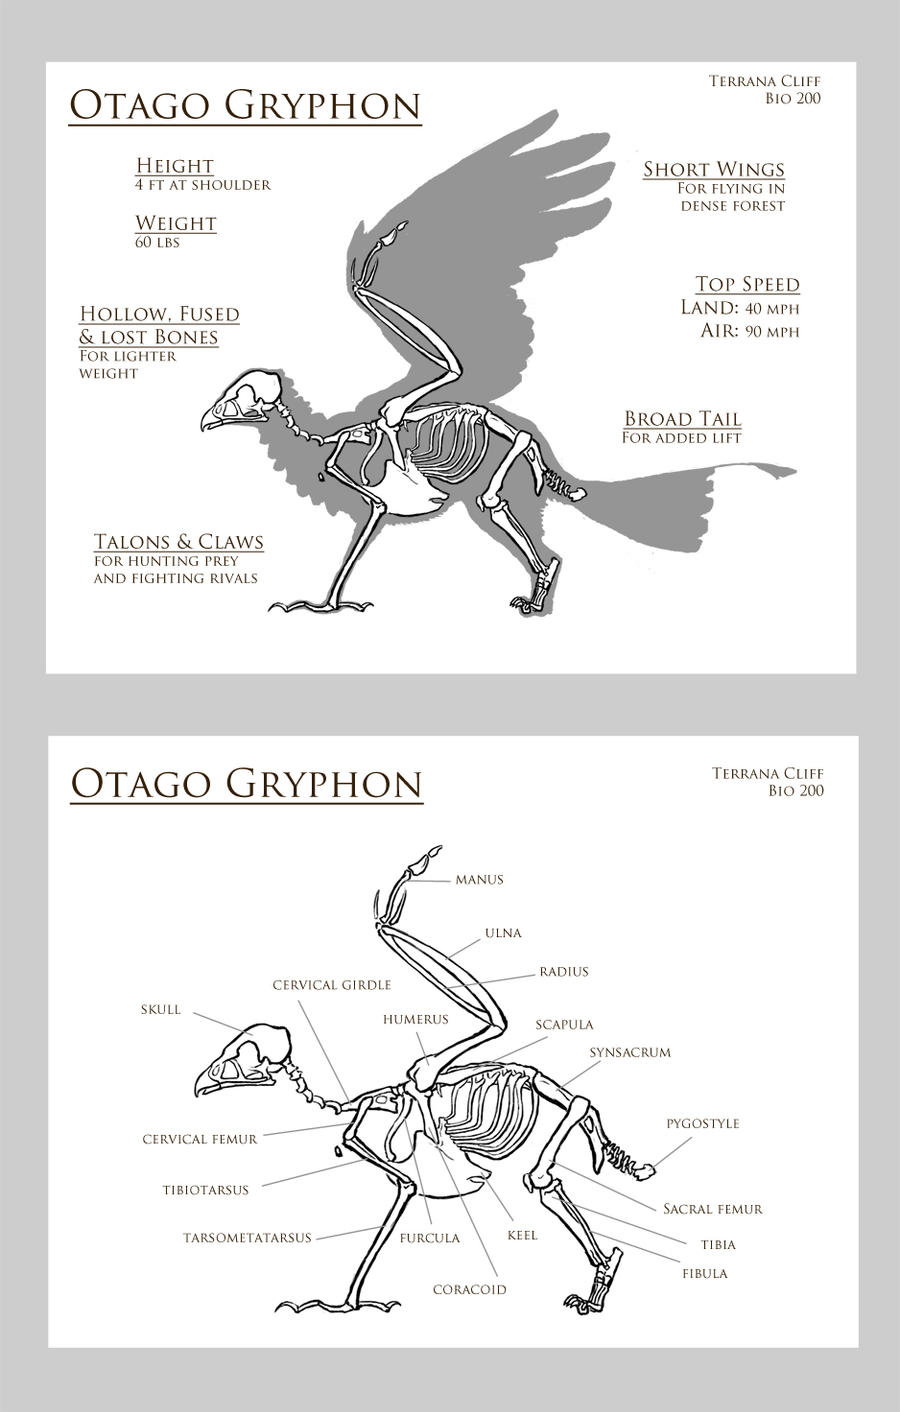 Otago Gryphon by rillani